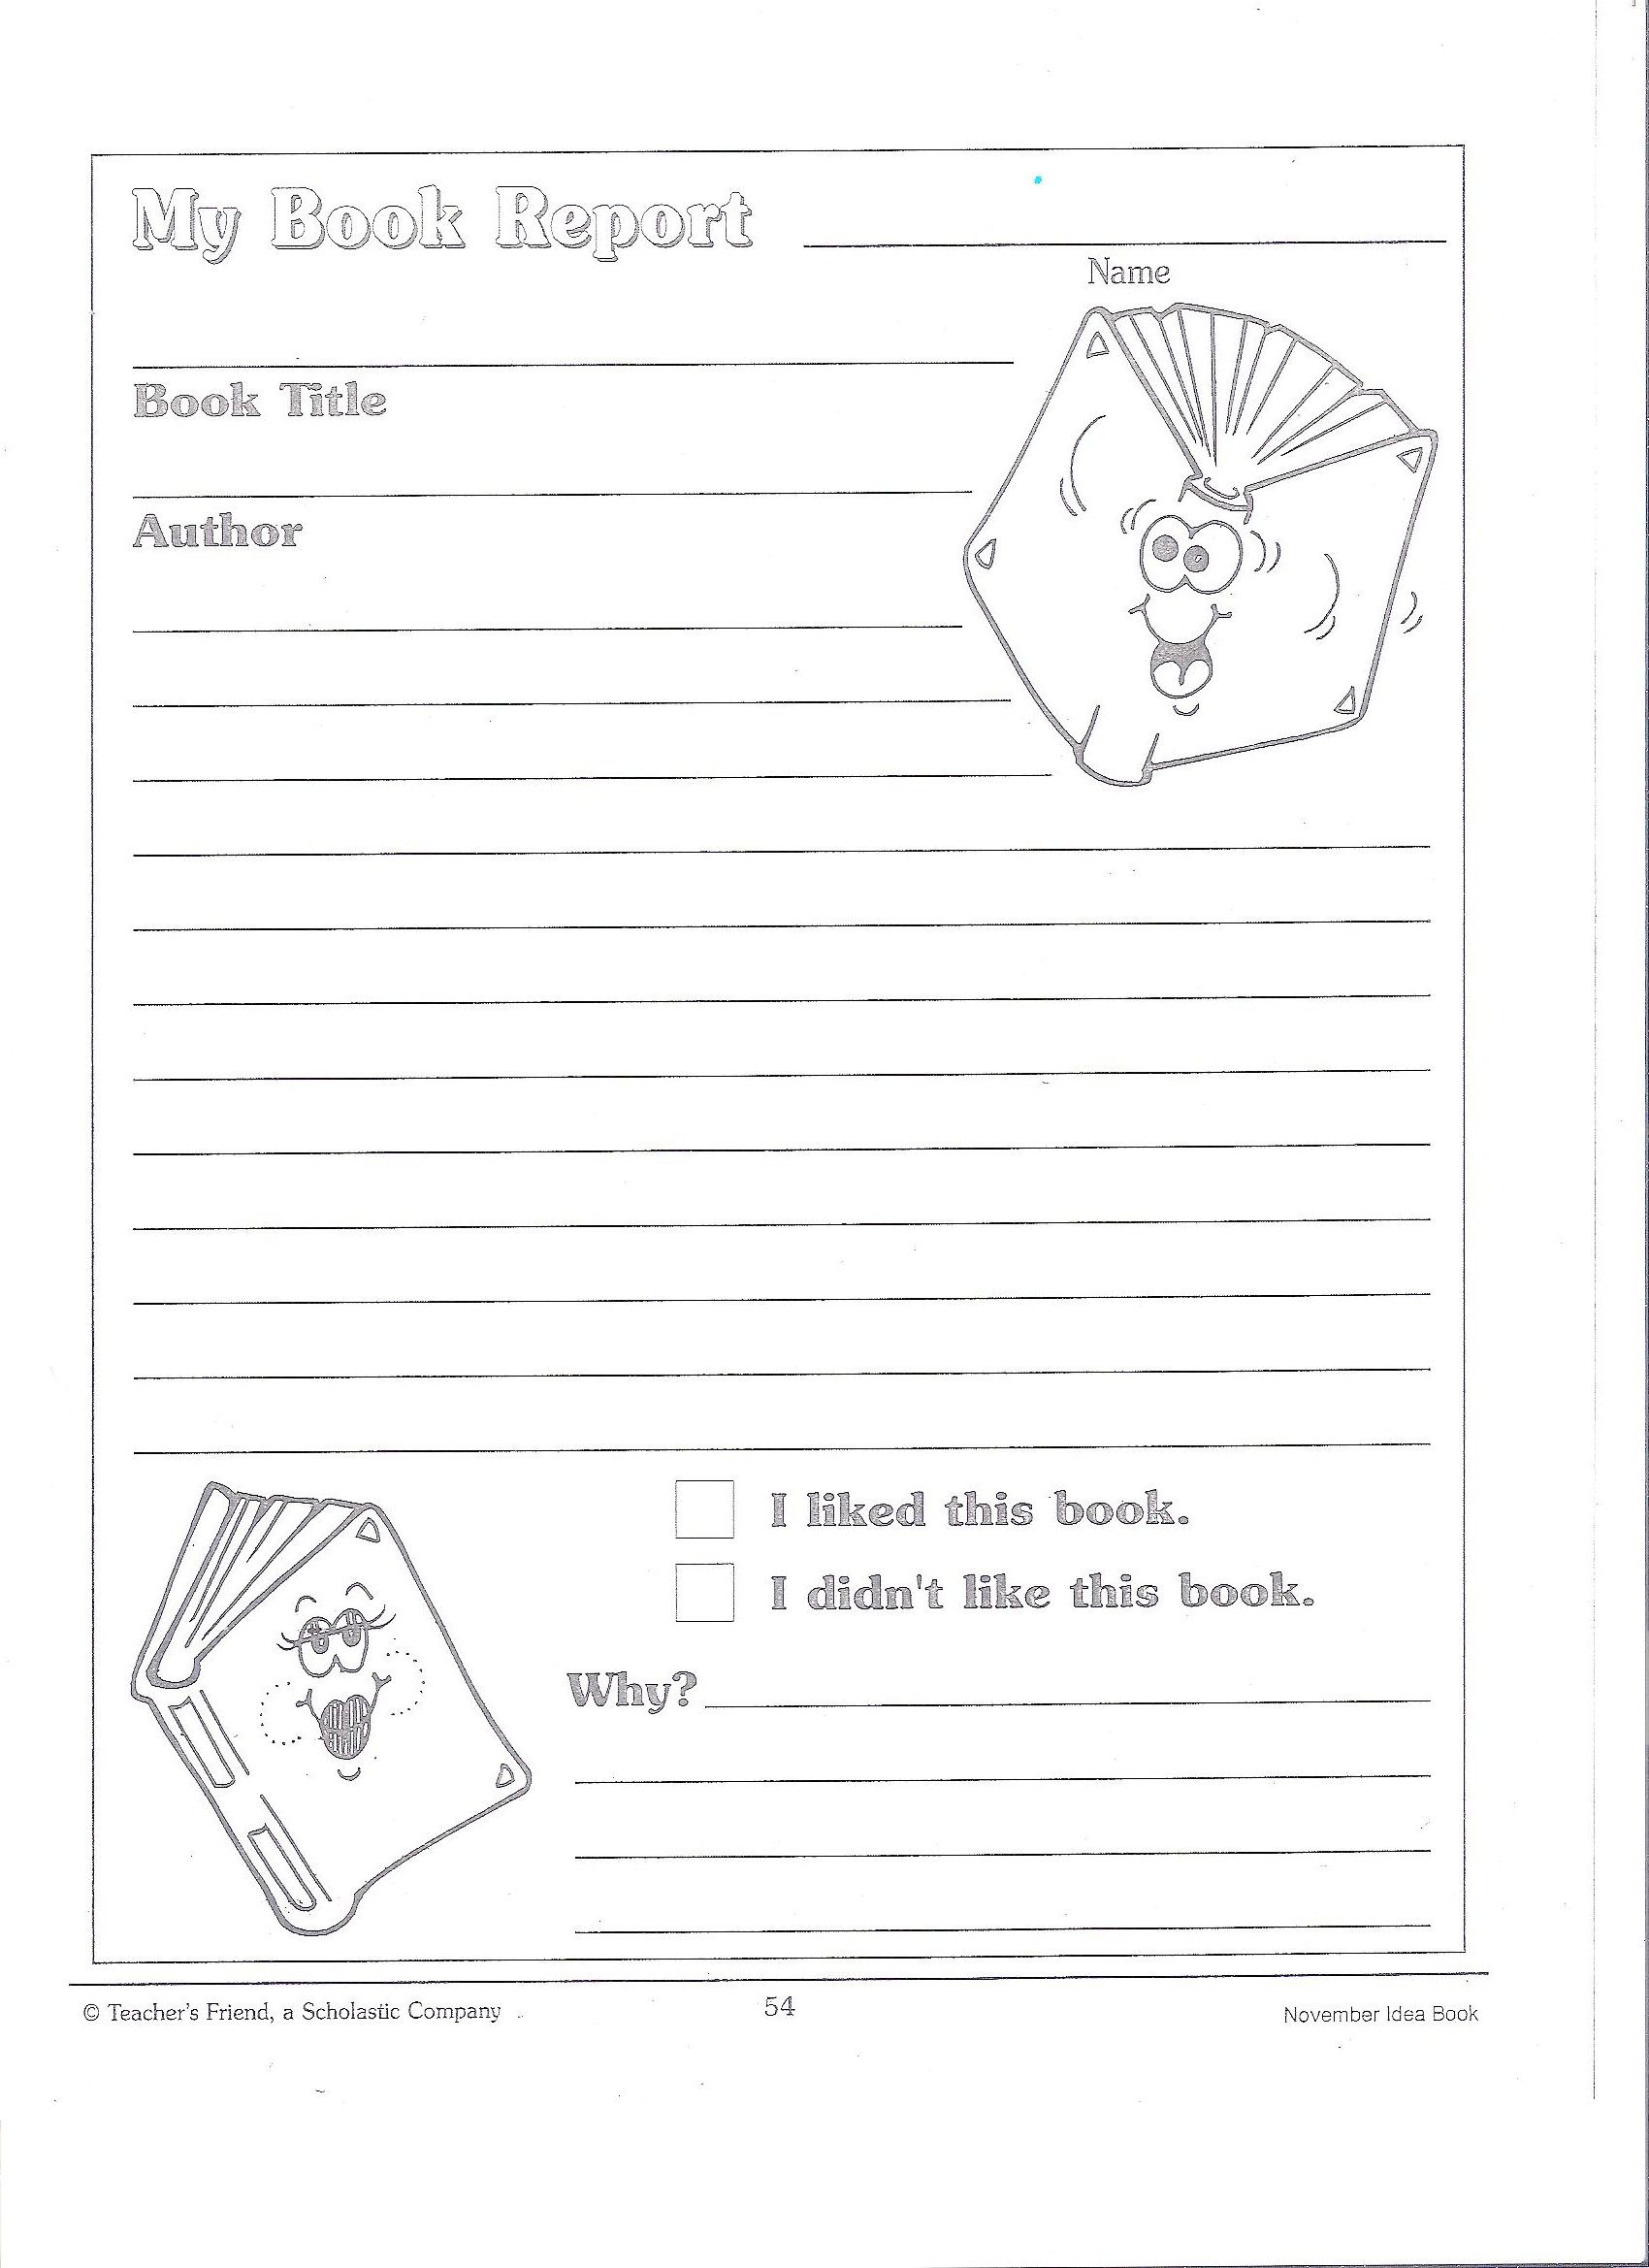 Printable Book Report Forms